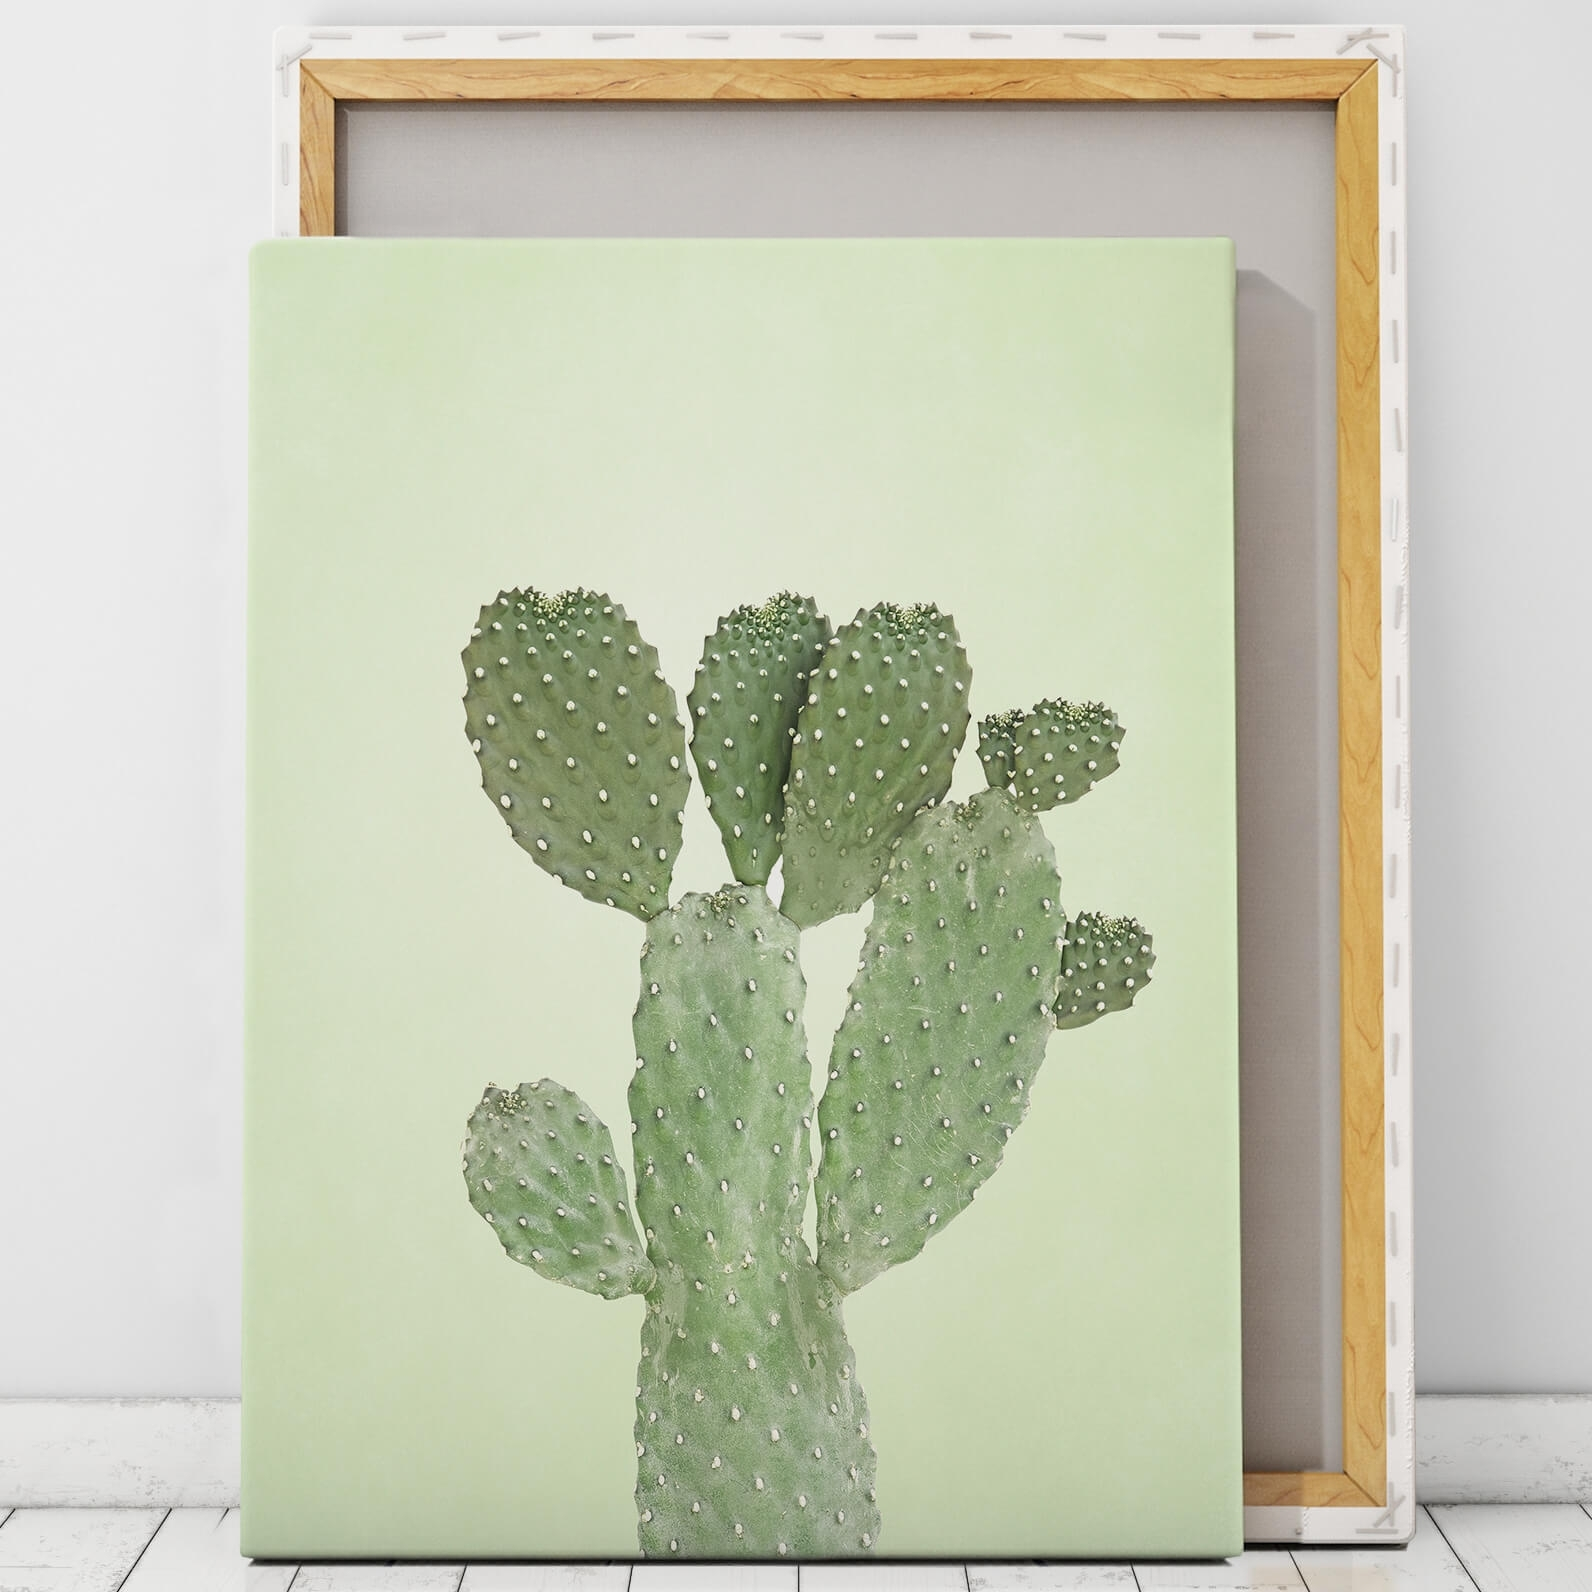 Green Cactus Wall Art Print | Artworld Art World Intended For Most Recent Cactus Wall Art (View 6 of 20)